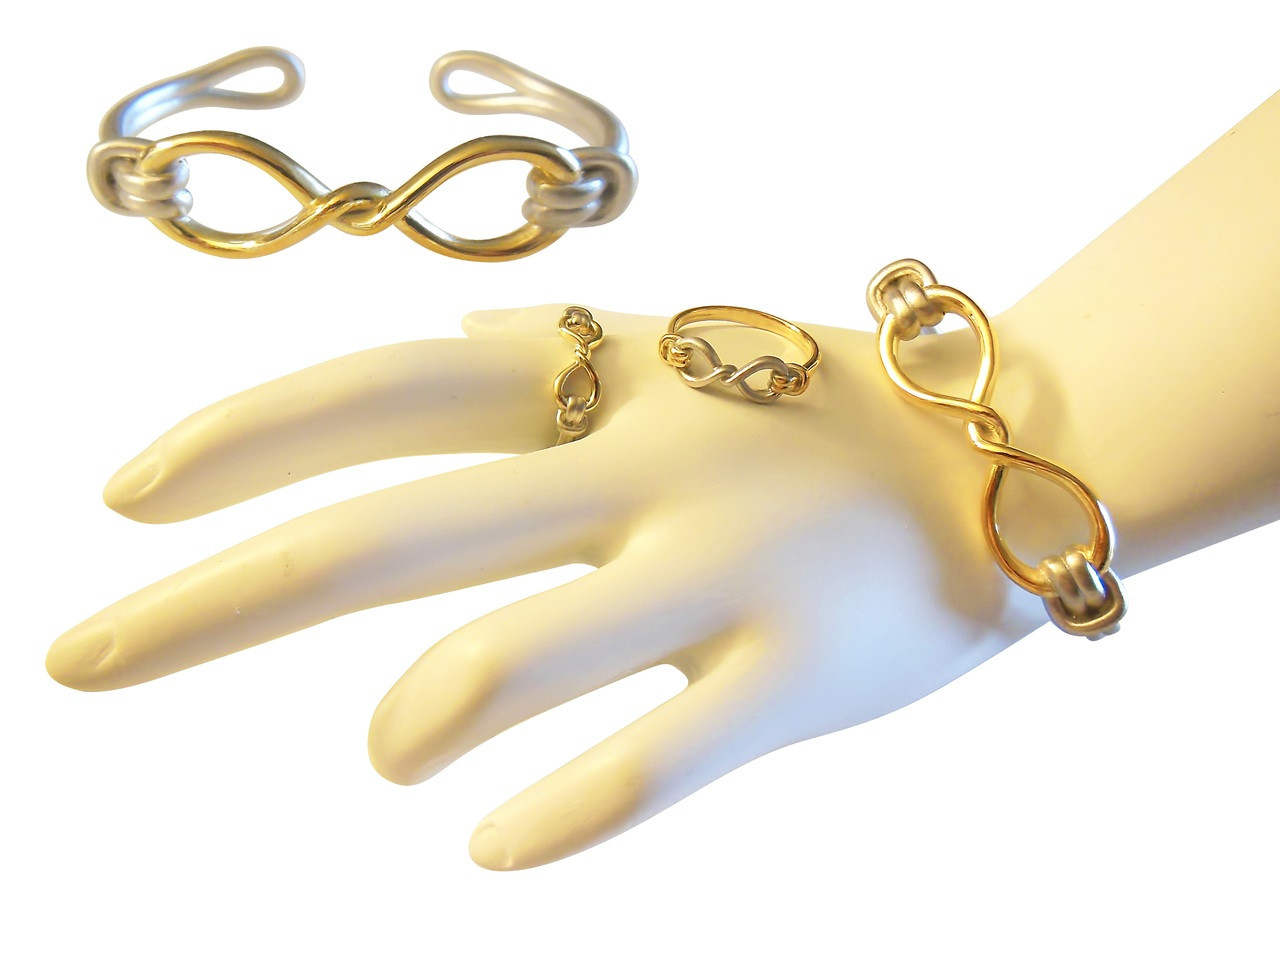 Infinity Knot Cuff Bracelet- 18K Gold. Tied to Infinite Possibilities.